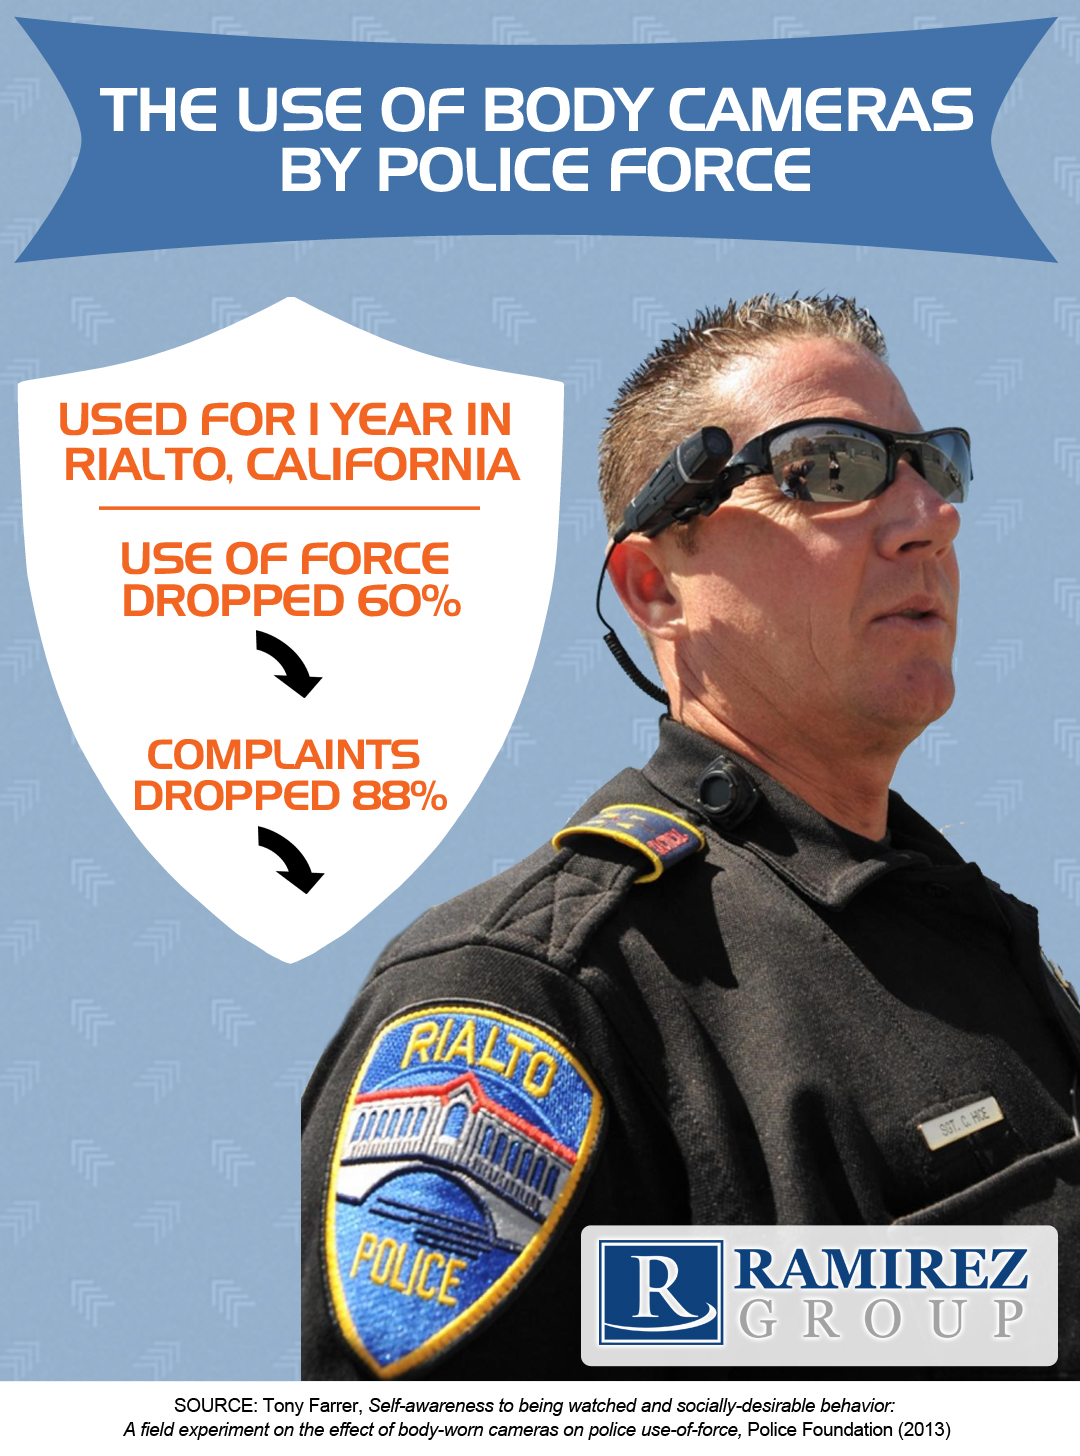 Police_Body_Cameras_Infographic.jpg